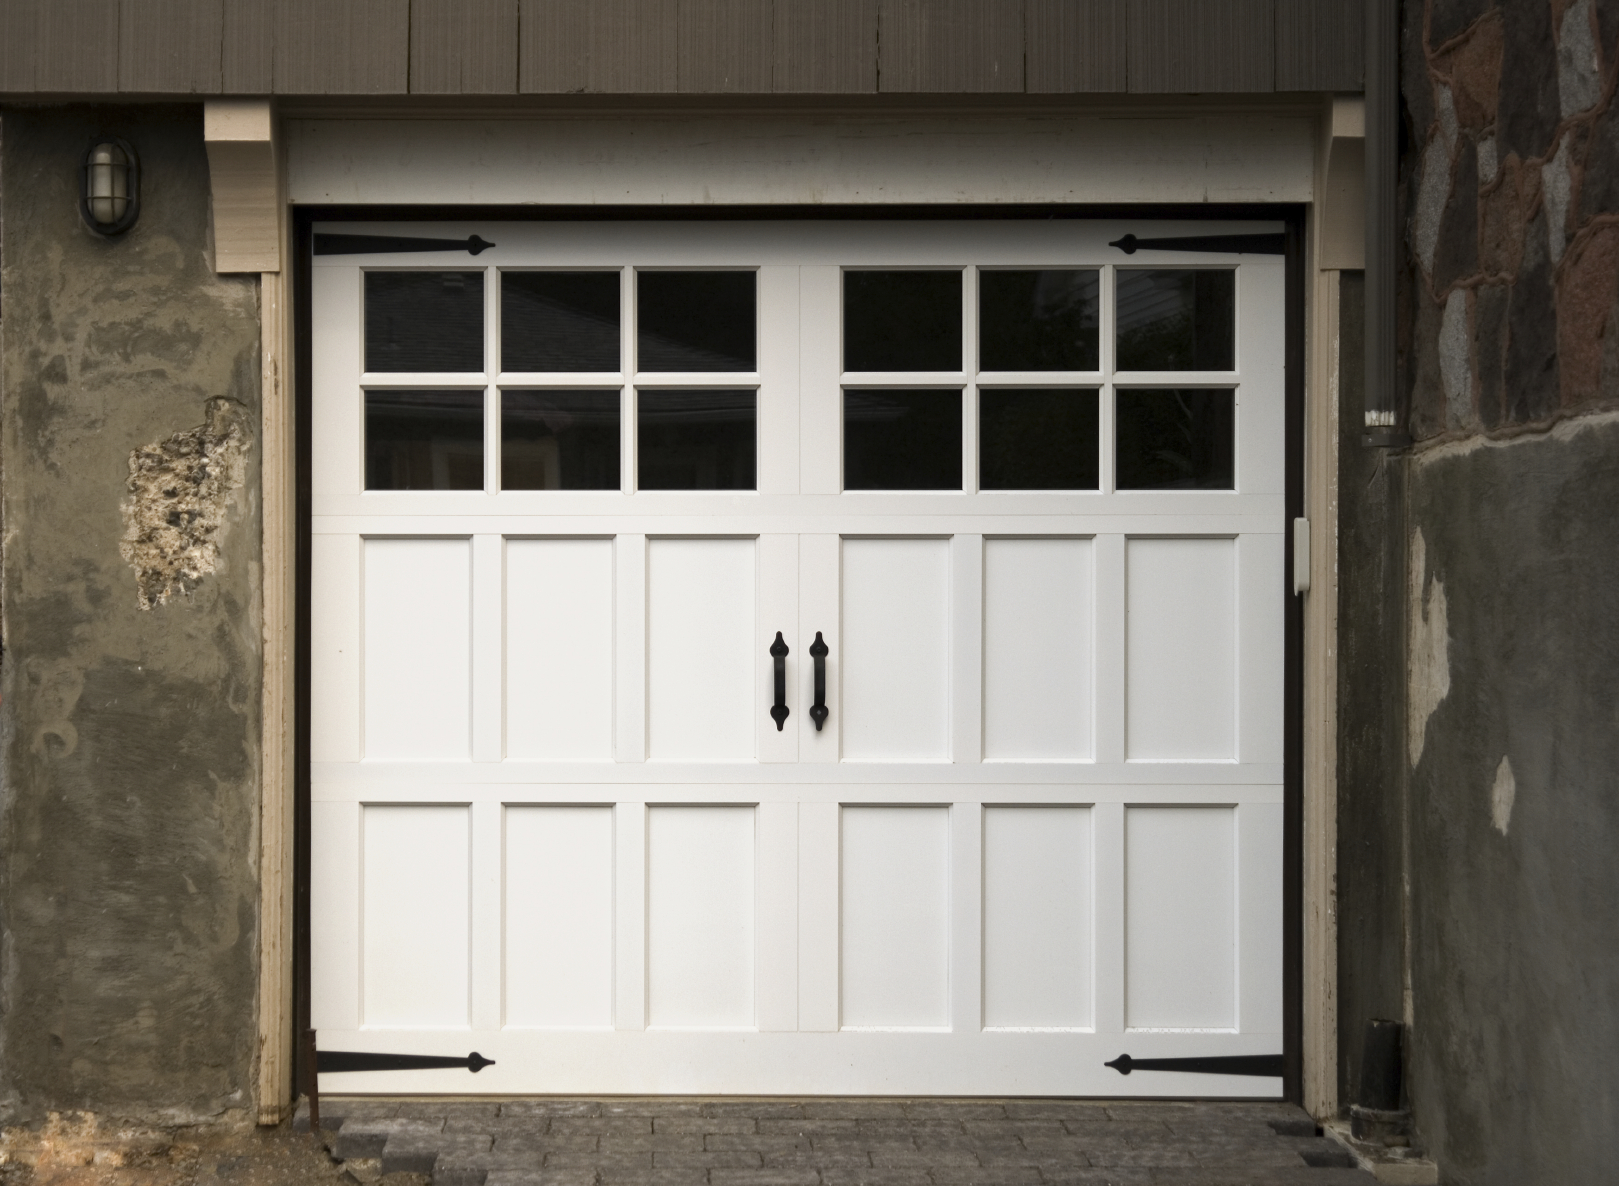 1186 #7D6A4E Carriage Style Garage Doors Carroll Garage Doors picture/photo Install Garage Doors 37091619